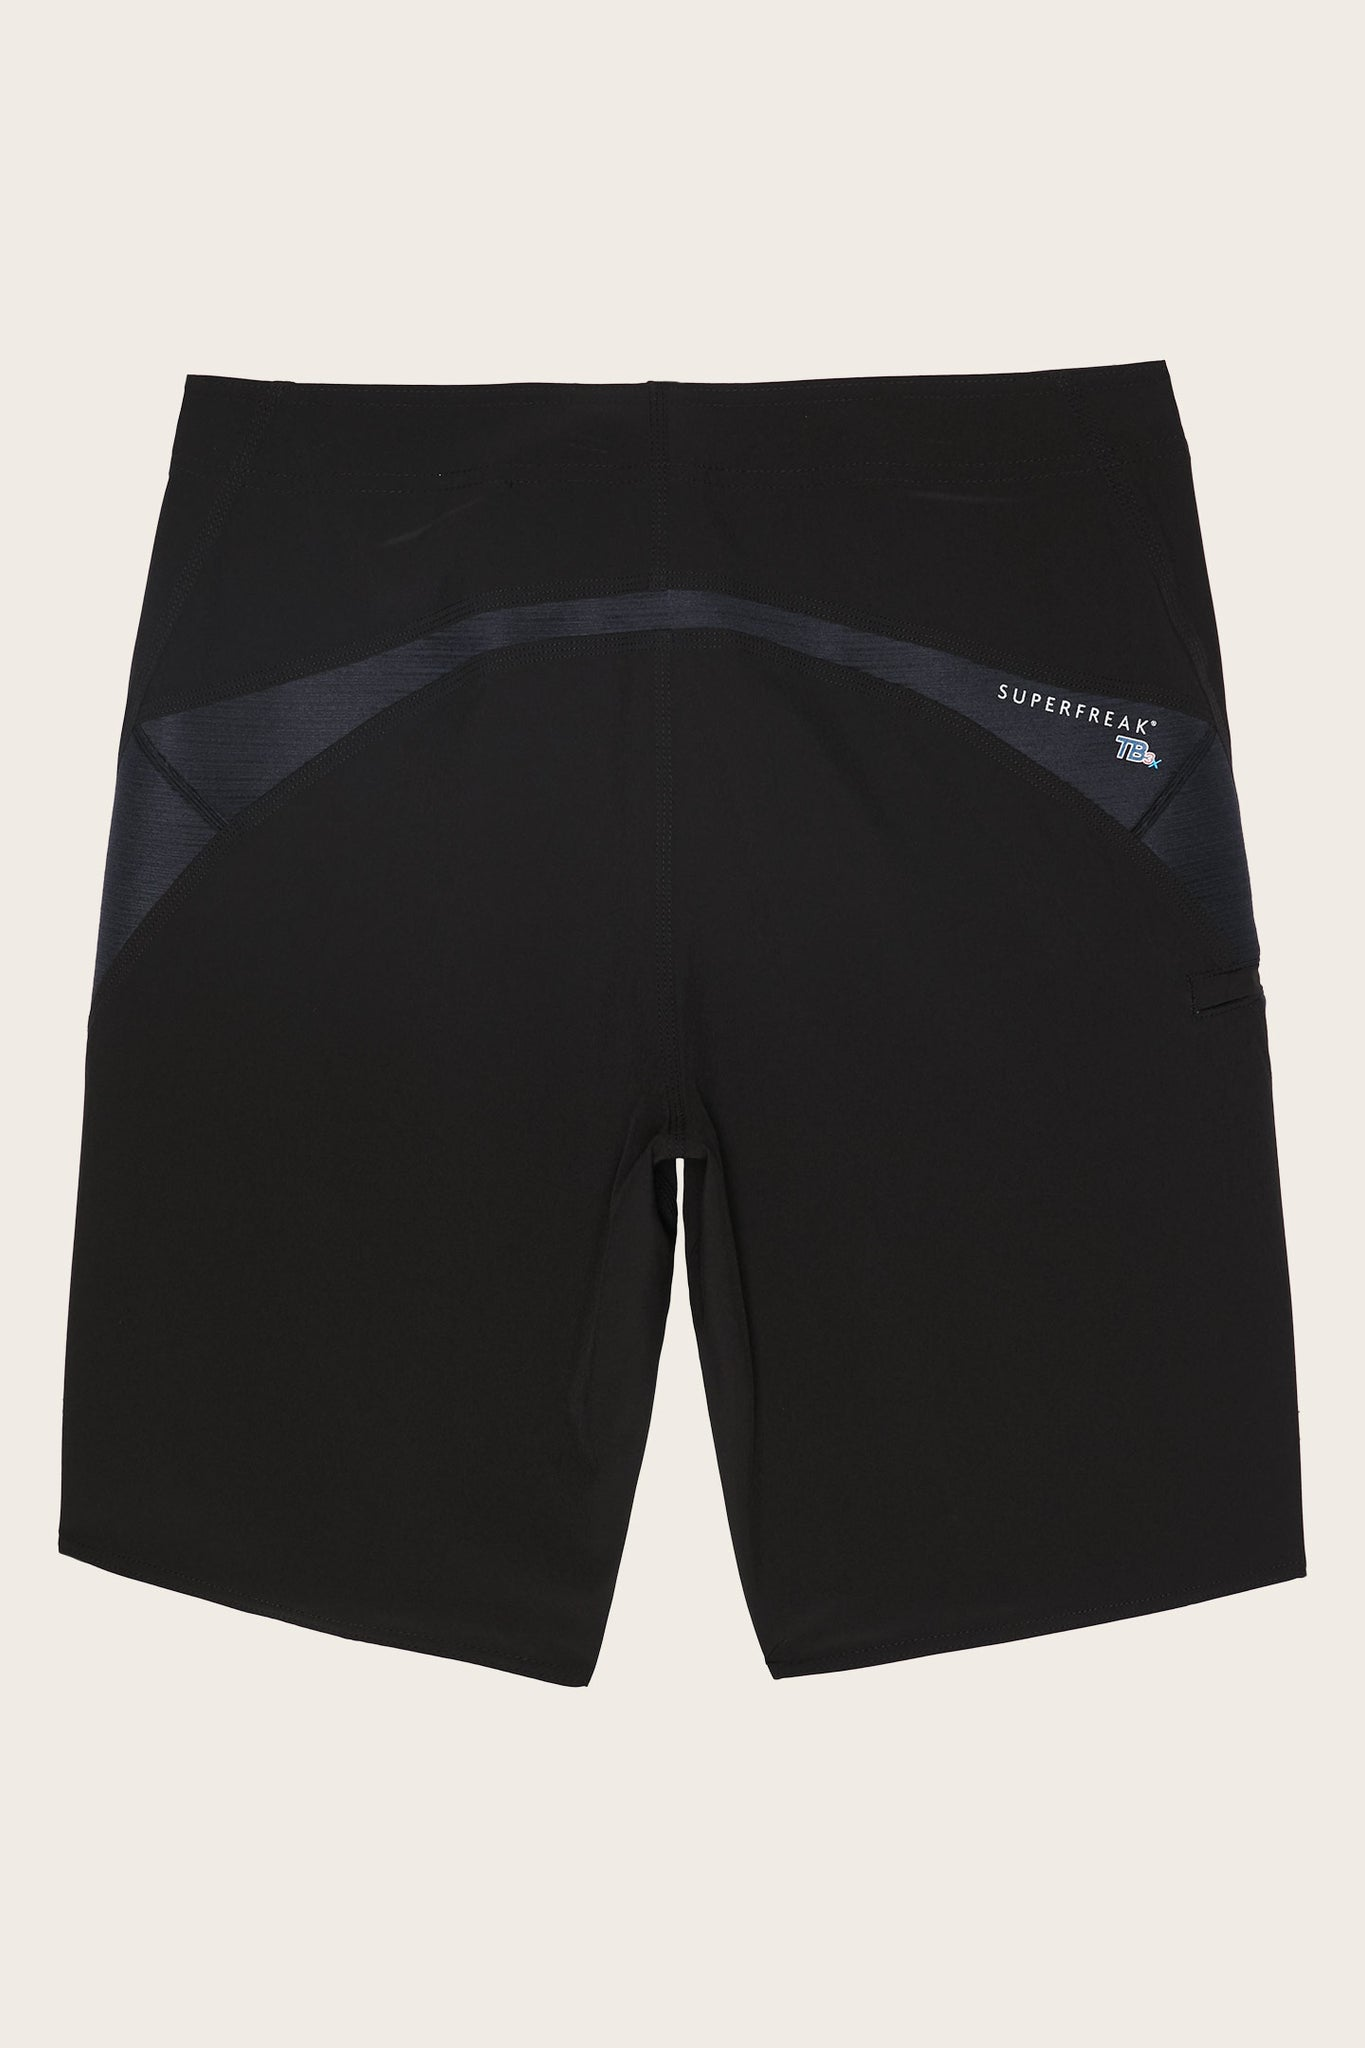 Superfreak Boardshorts - Black | O'Neill